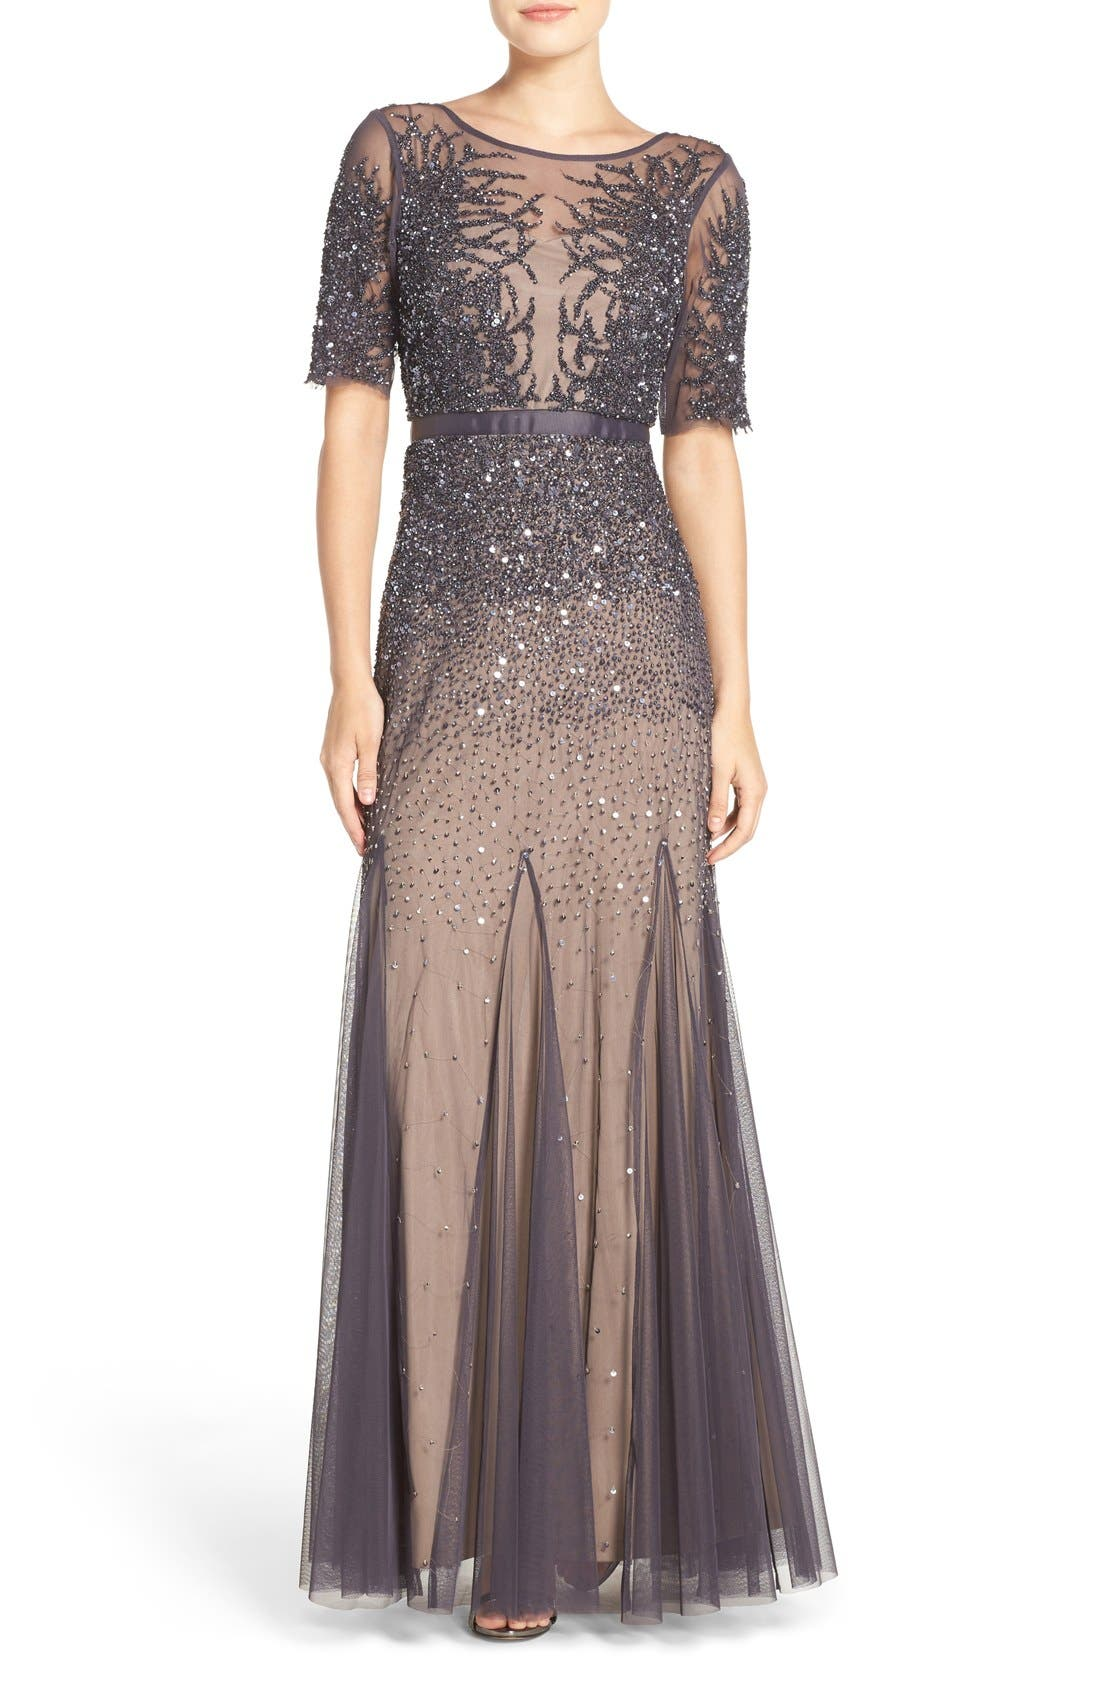 Alternate Image 1 Selected - Adrianna Papell Embellished Mesh Mermaid Gown